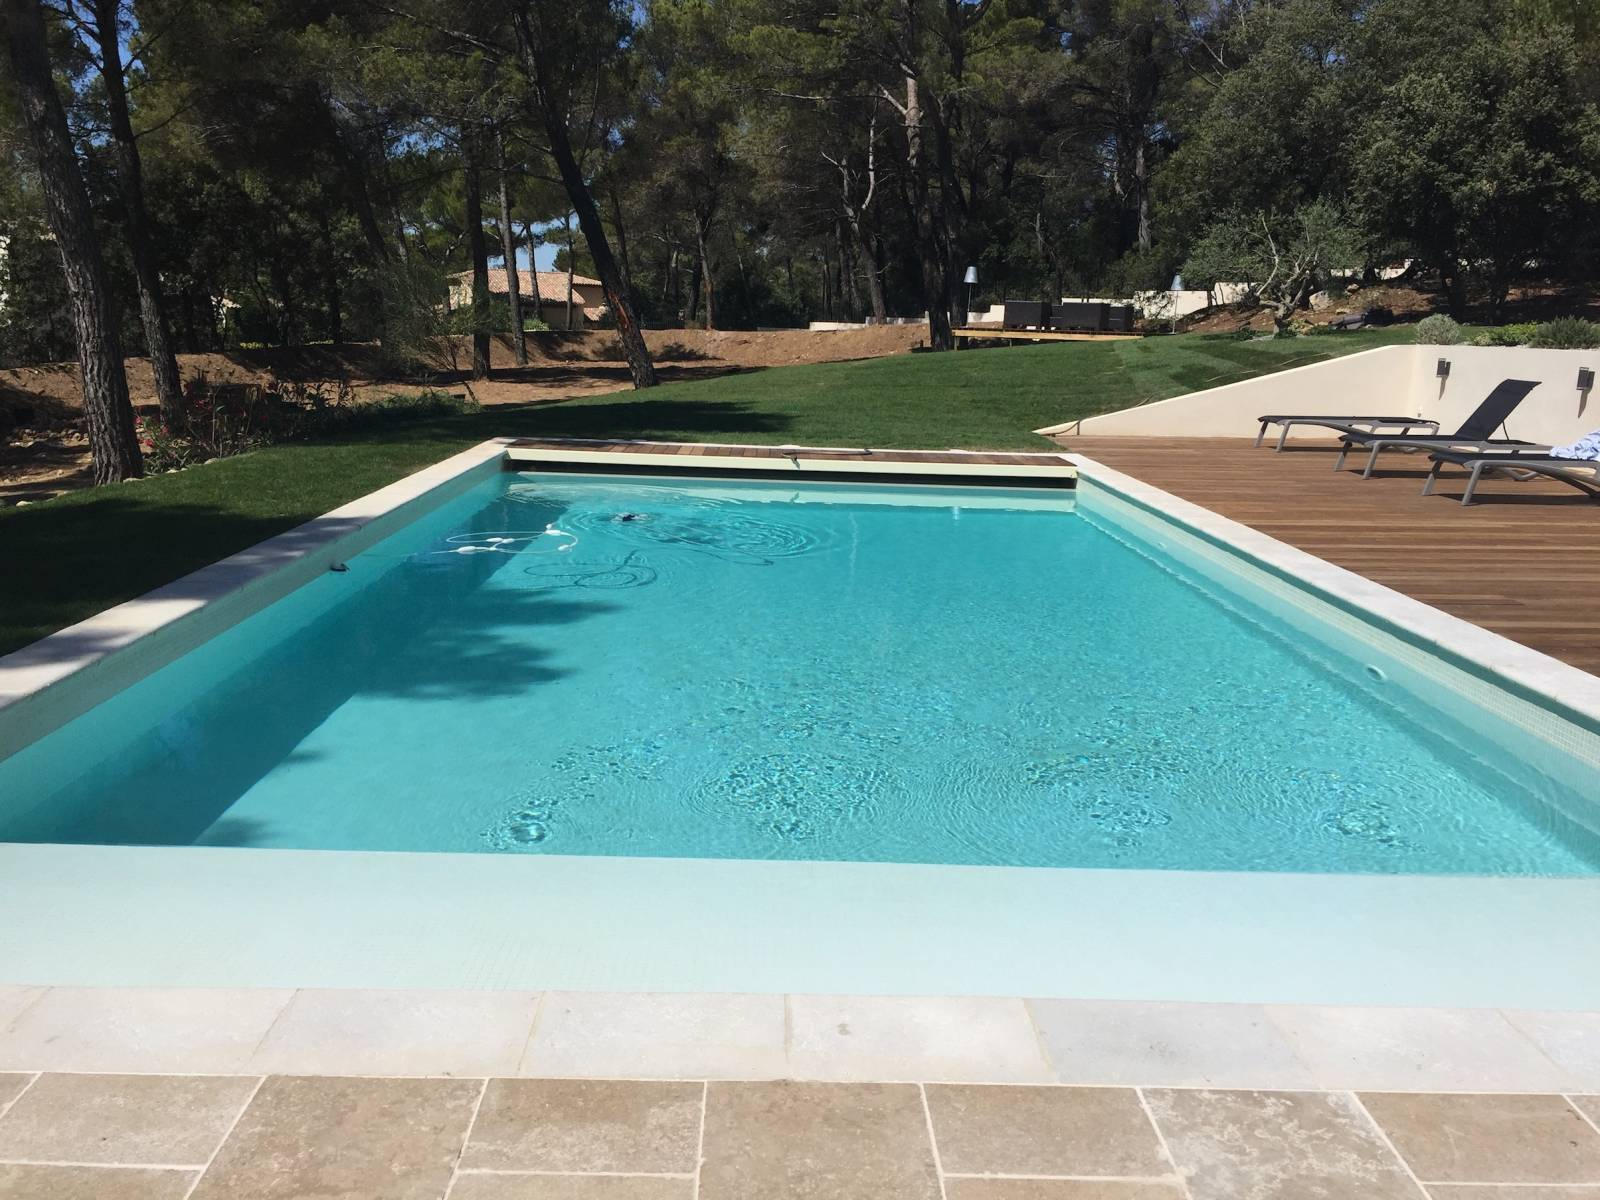 R novation d 39 une piscine en b ton avec am nagement de ses for Construction piscine aix en provence